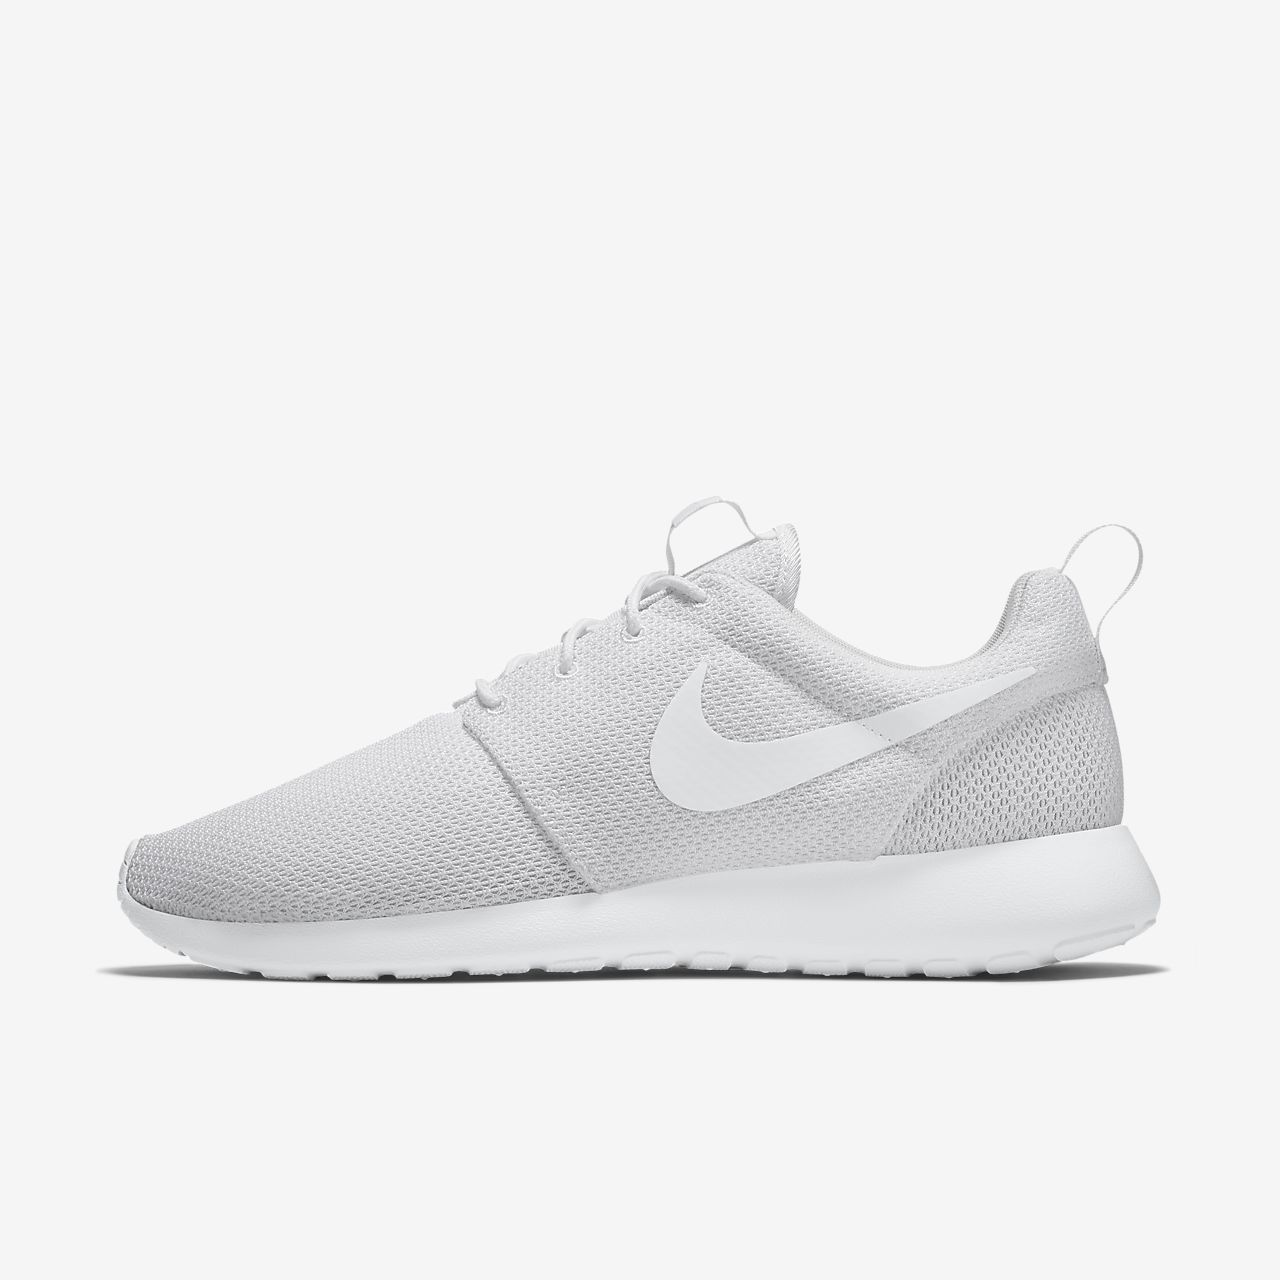 01aa9734a66c7 Nike Roshe One Men s Shoe. Nike.com